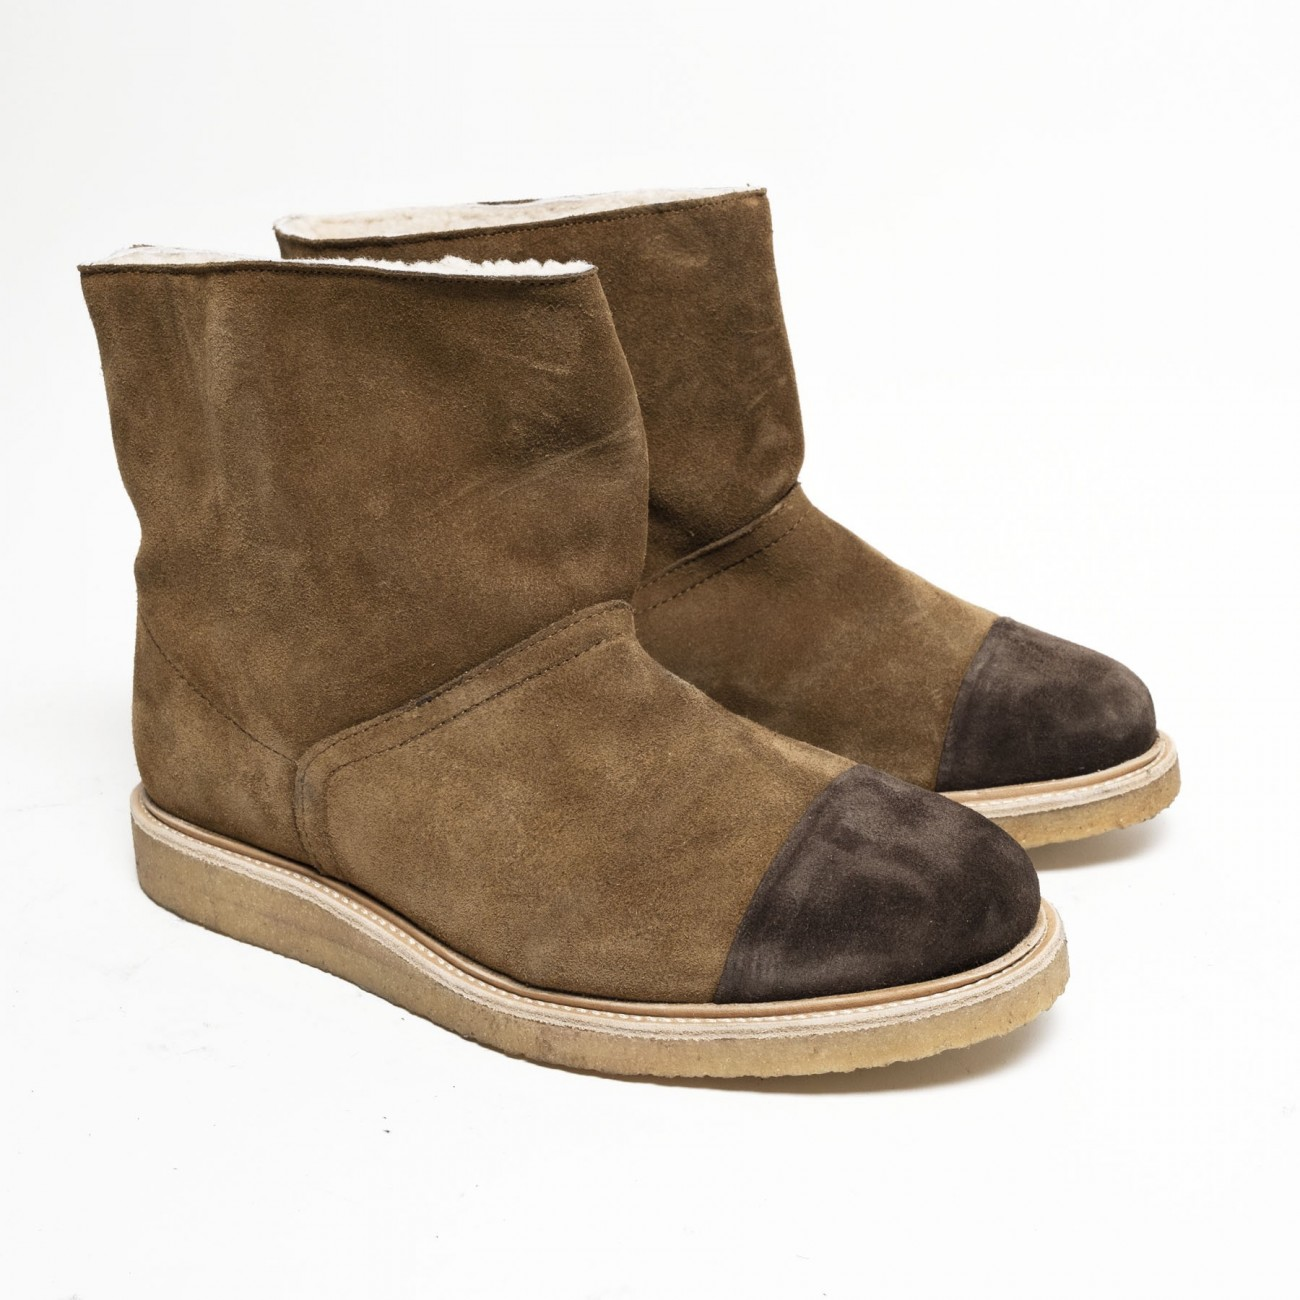 Cammi wool suede tan - Size 38